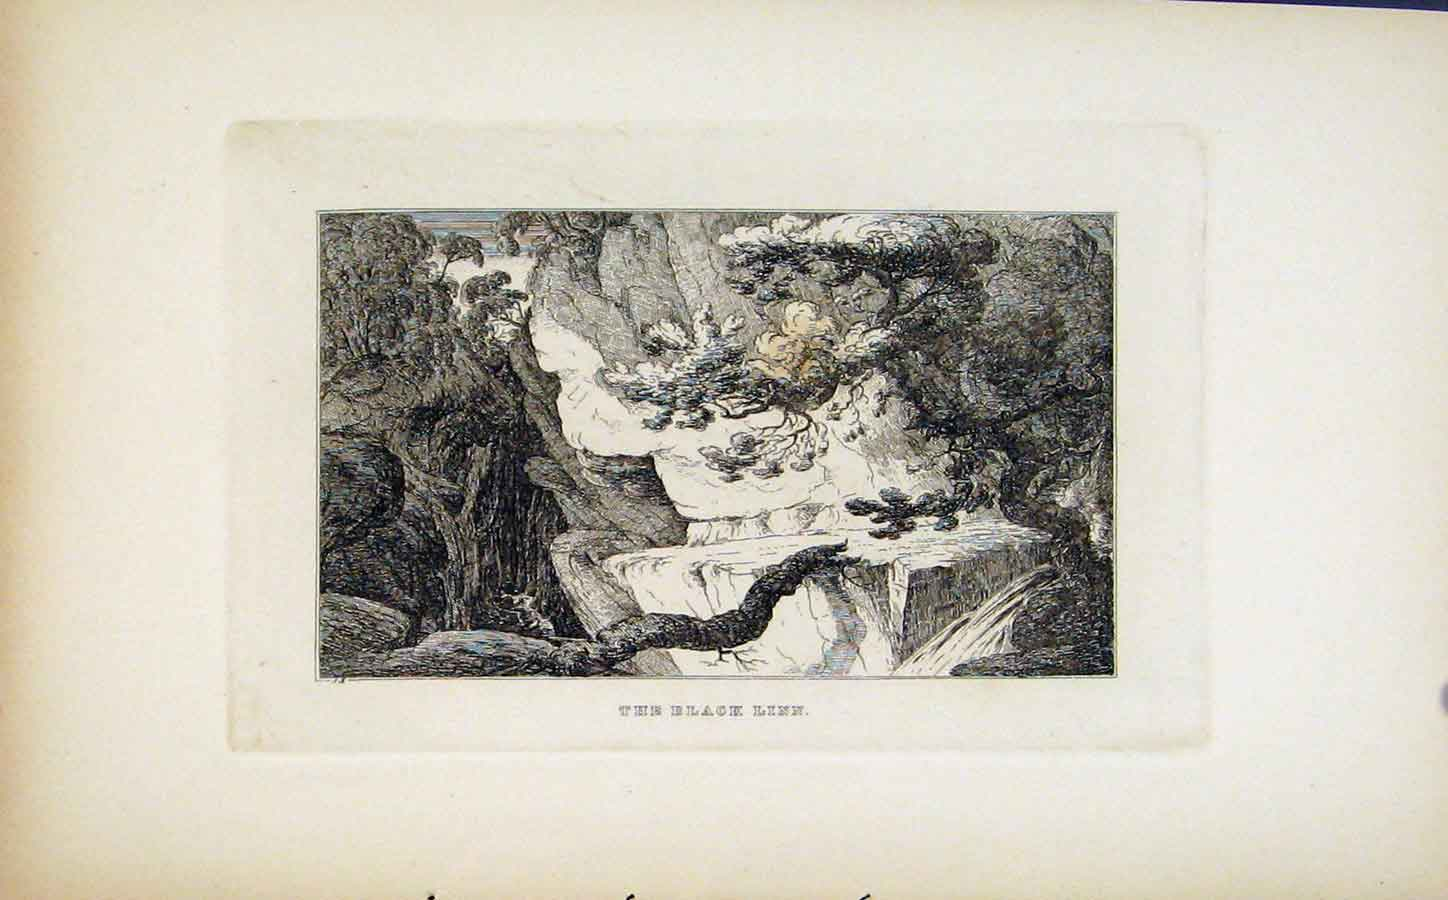 Print Etching Black Linn Fine Art C1830 078191 Old Original